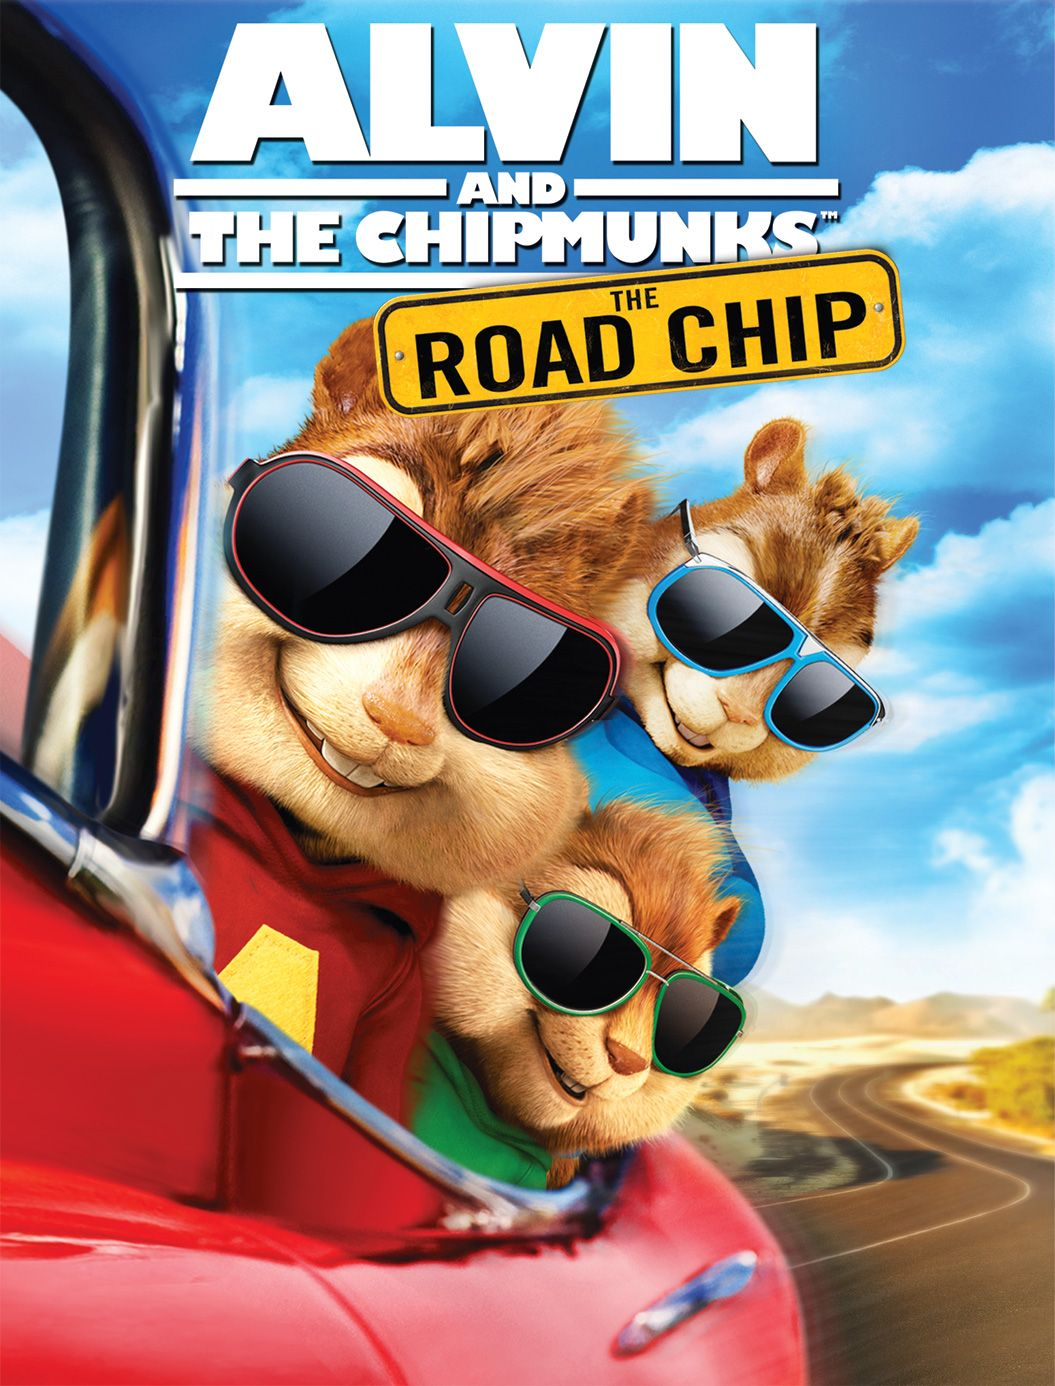 Theodore Alvin And The Chipmunks Glasses